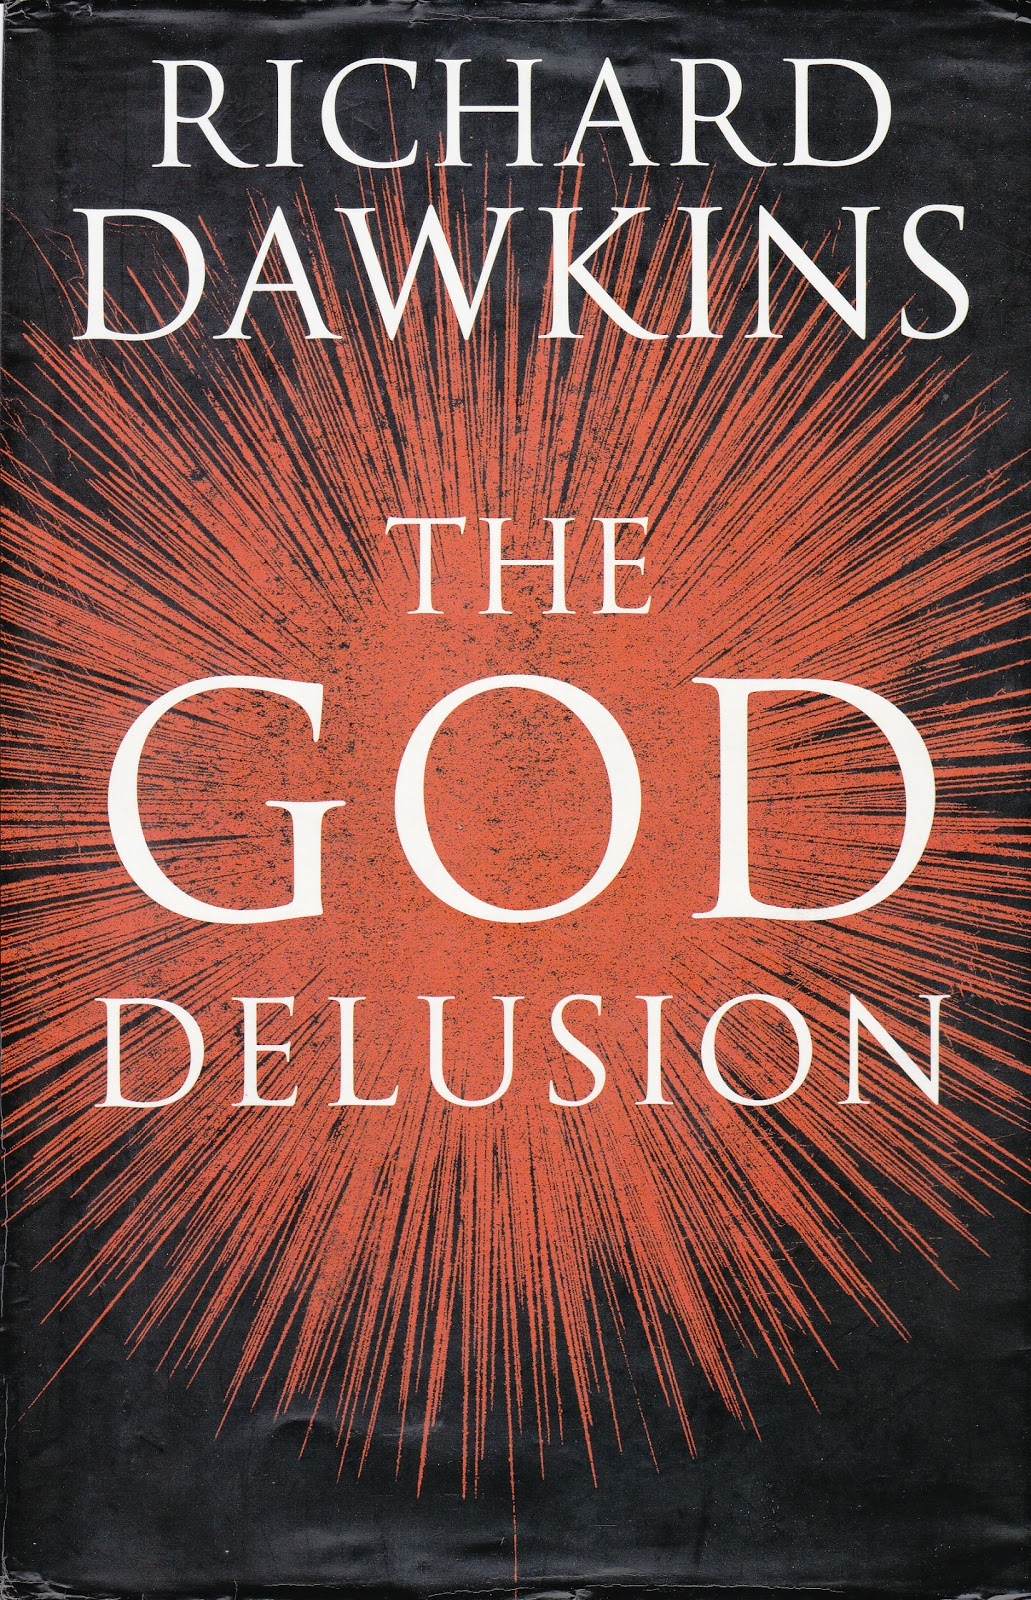 book review of a delusion of Online shopping from a great selection at books store.